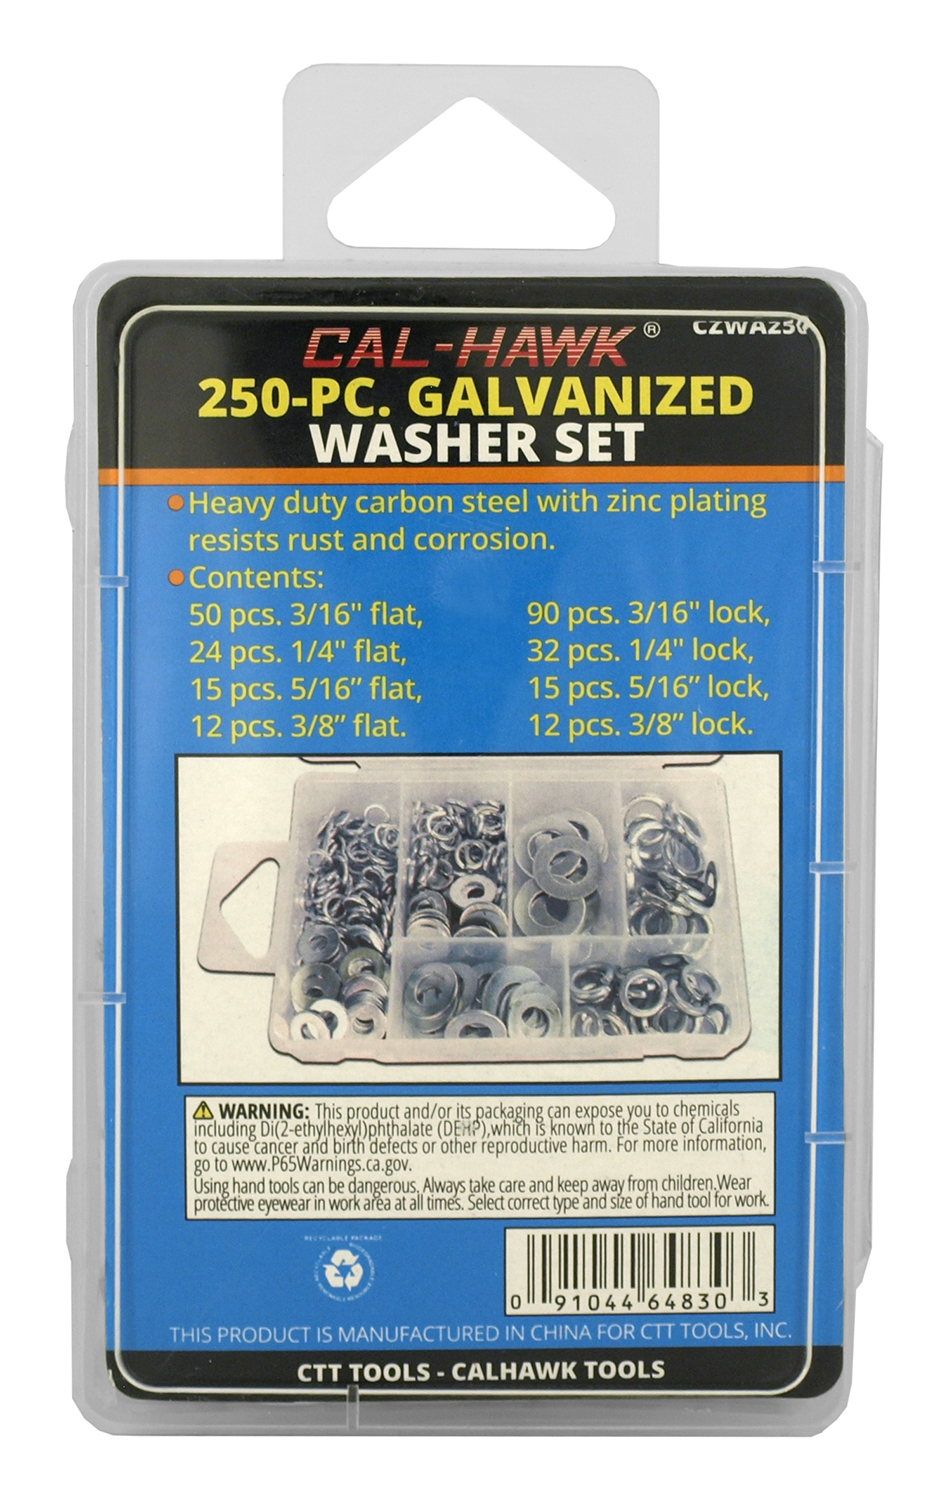 Cal-Hawk 250-pc. Galvanized Washer Set